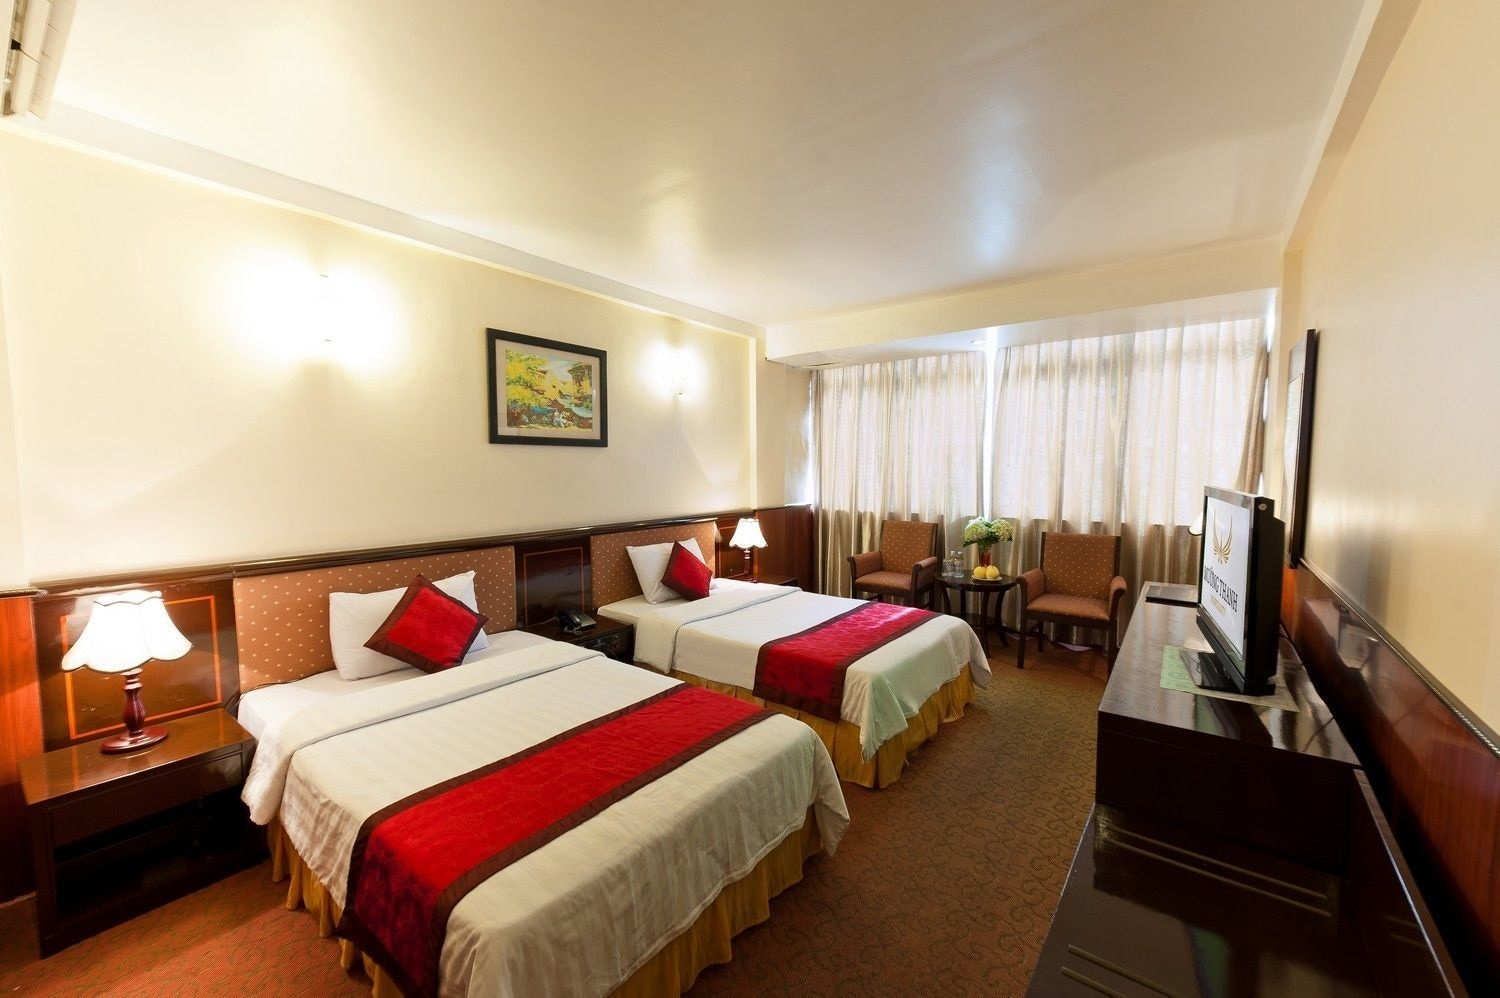 Muong Thanh Thanh Nien Vinh Hotel, Vinh